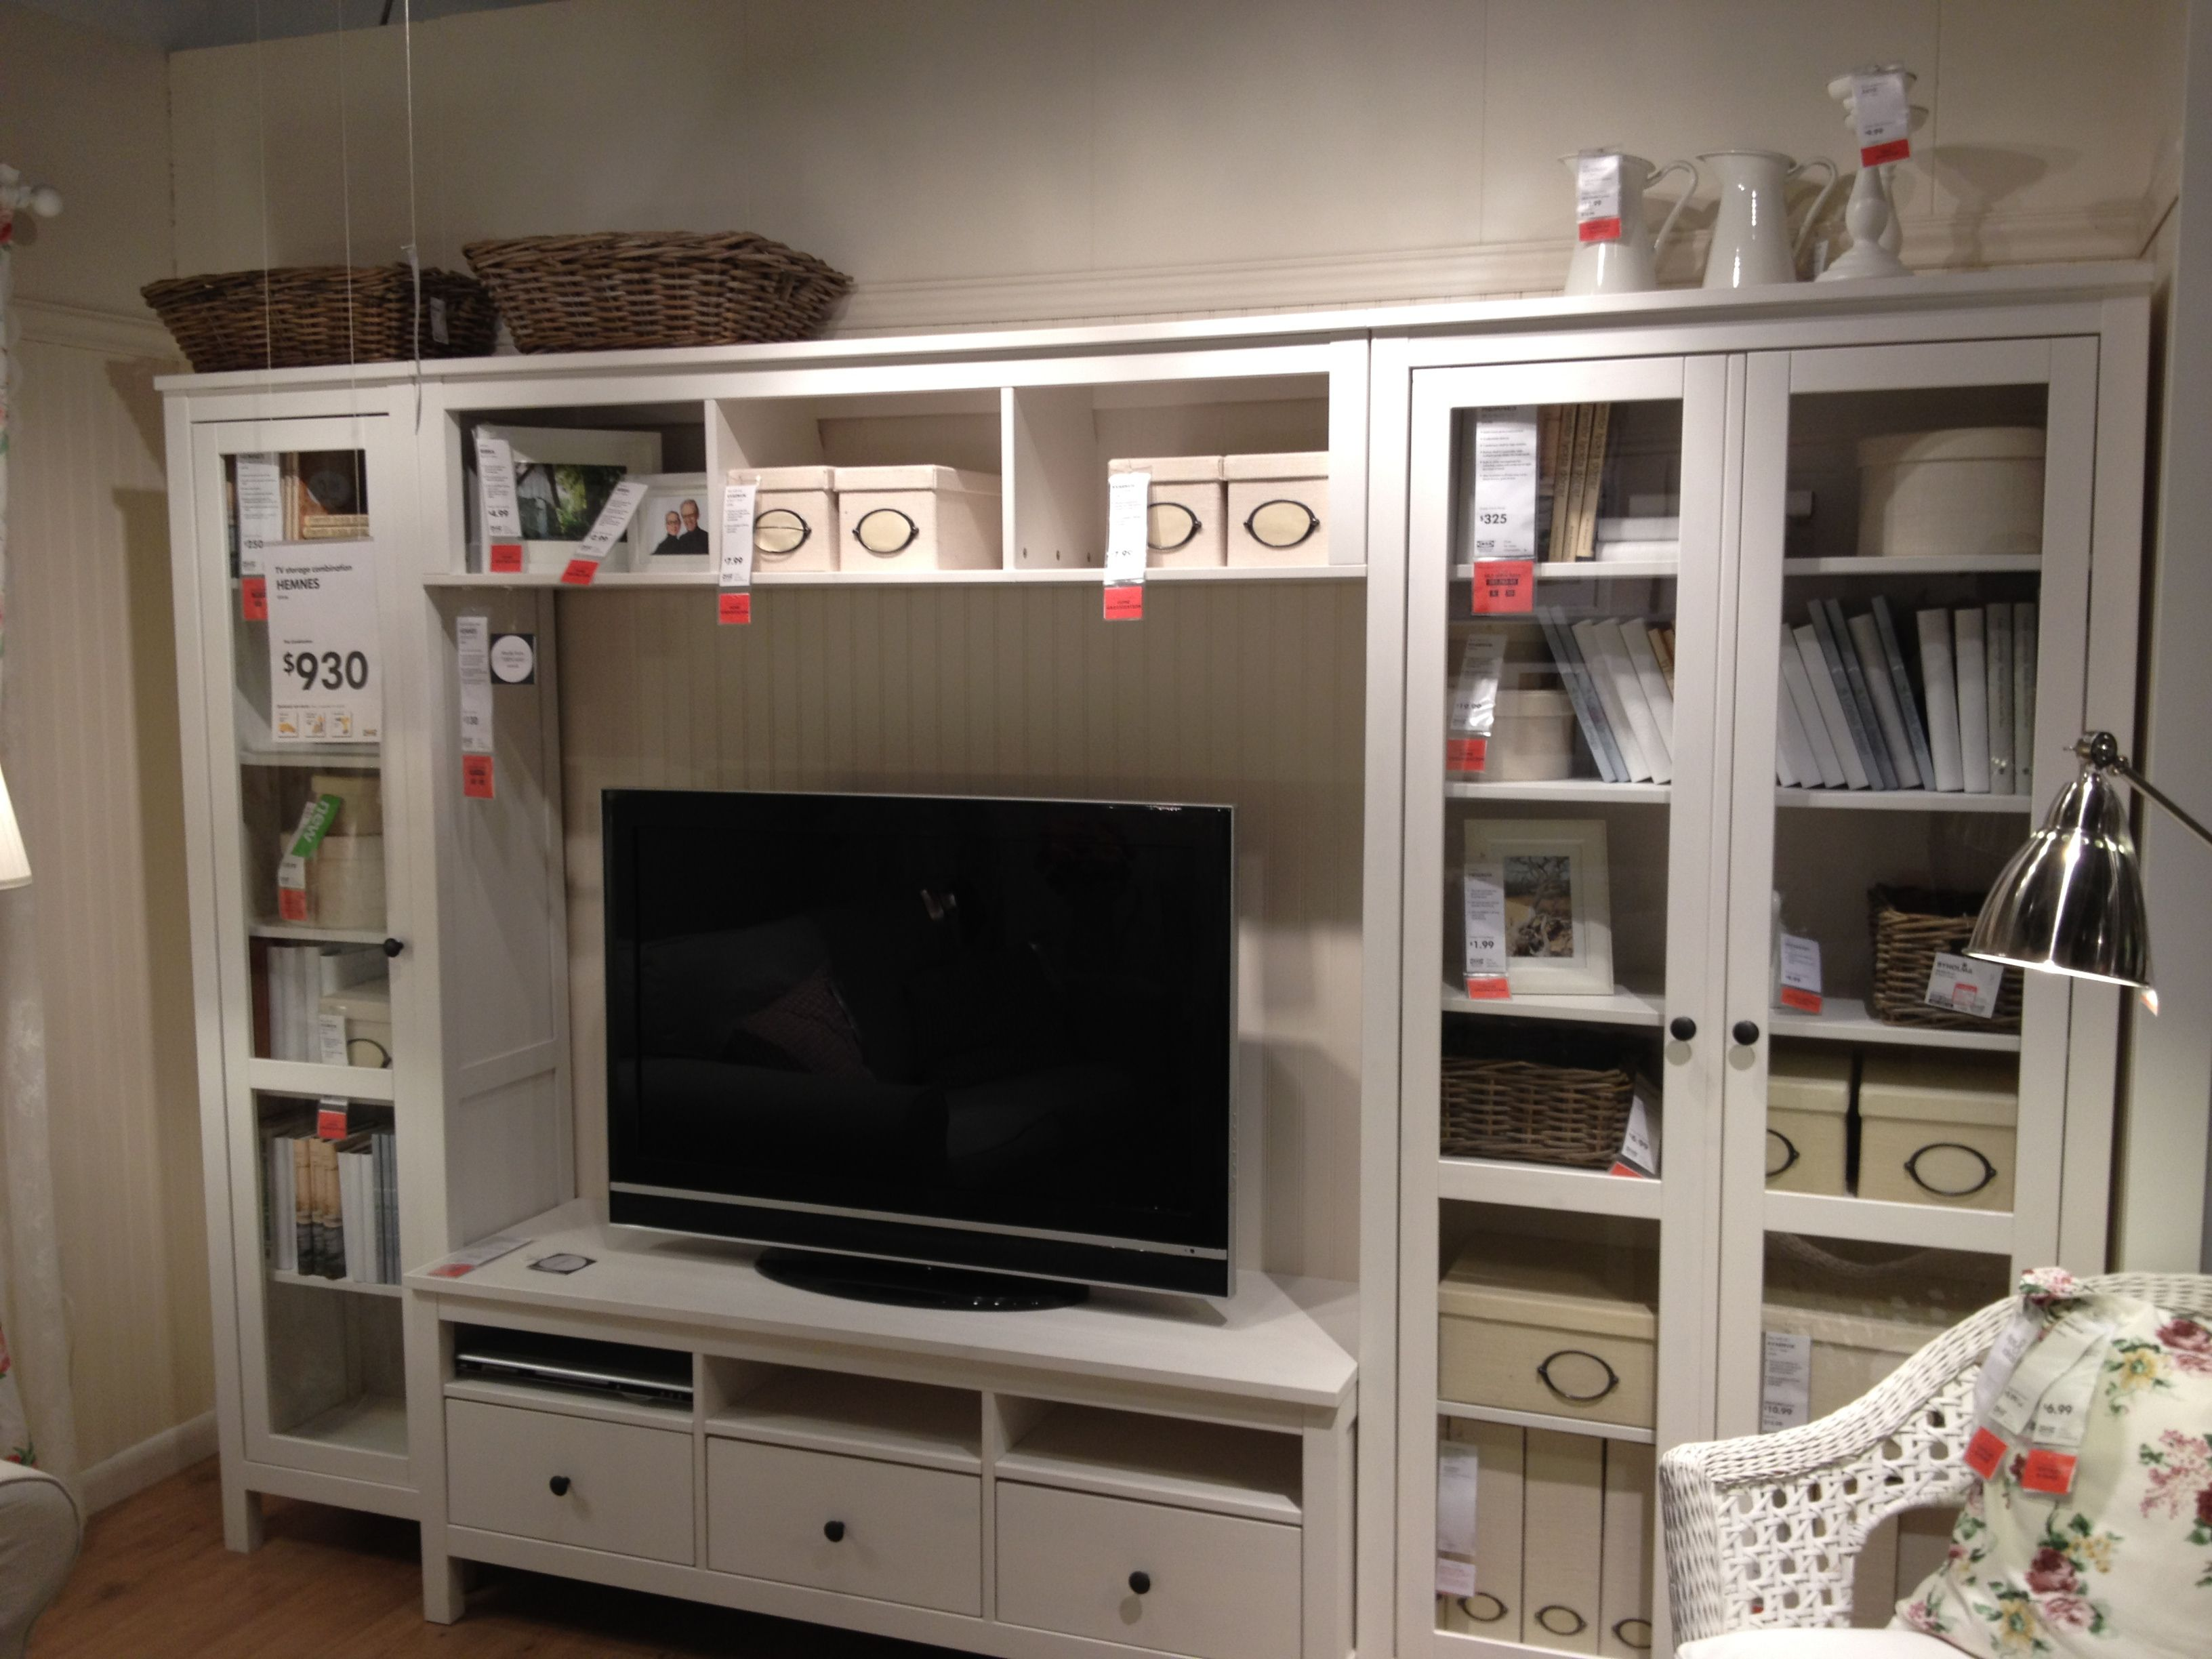 Tv storage combination ikea hemnes 930 loft pinterest for Agencement de stand